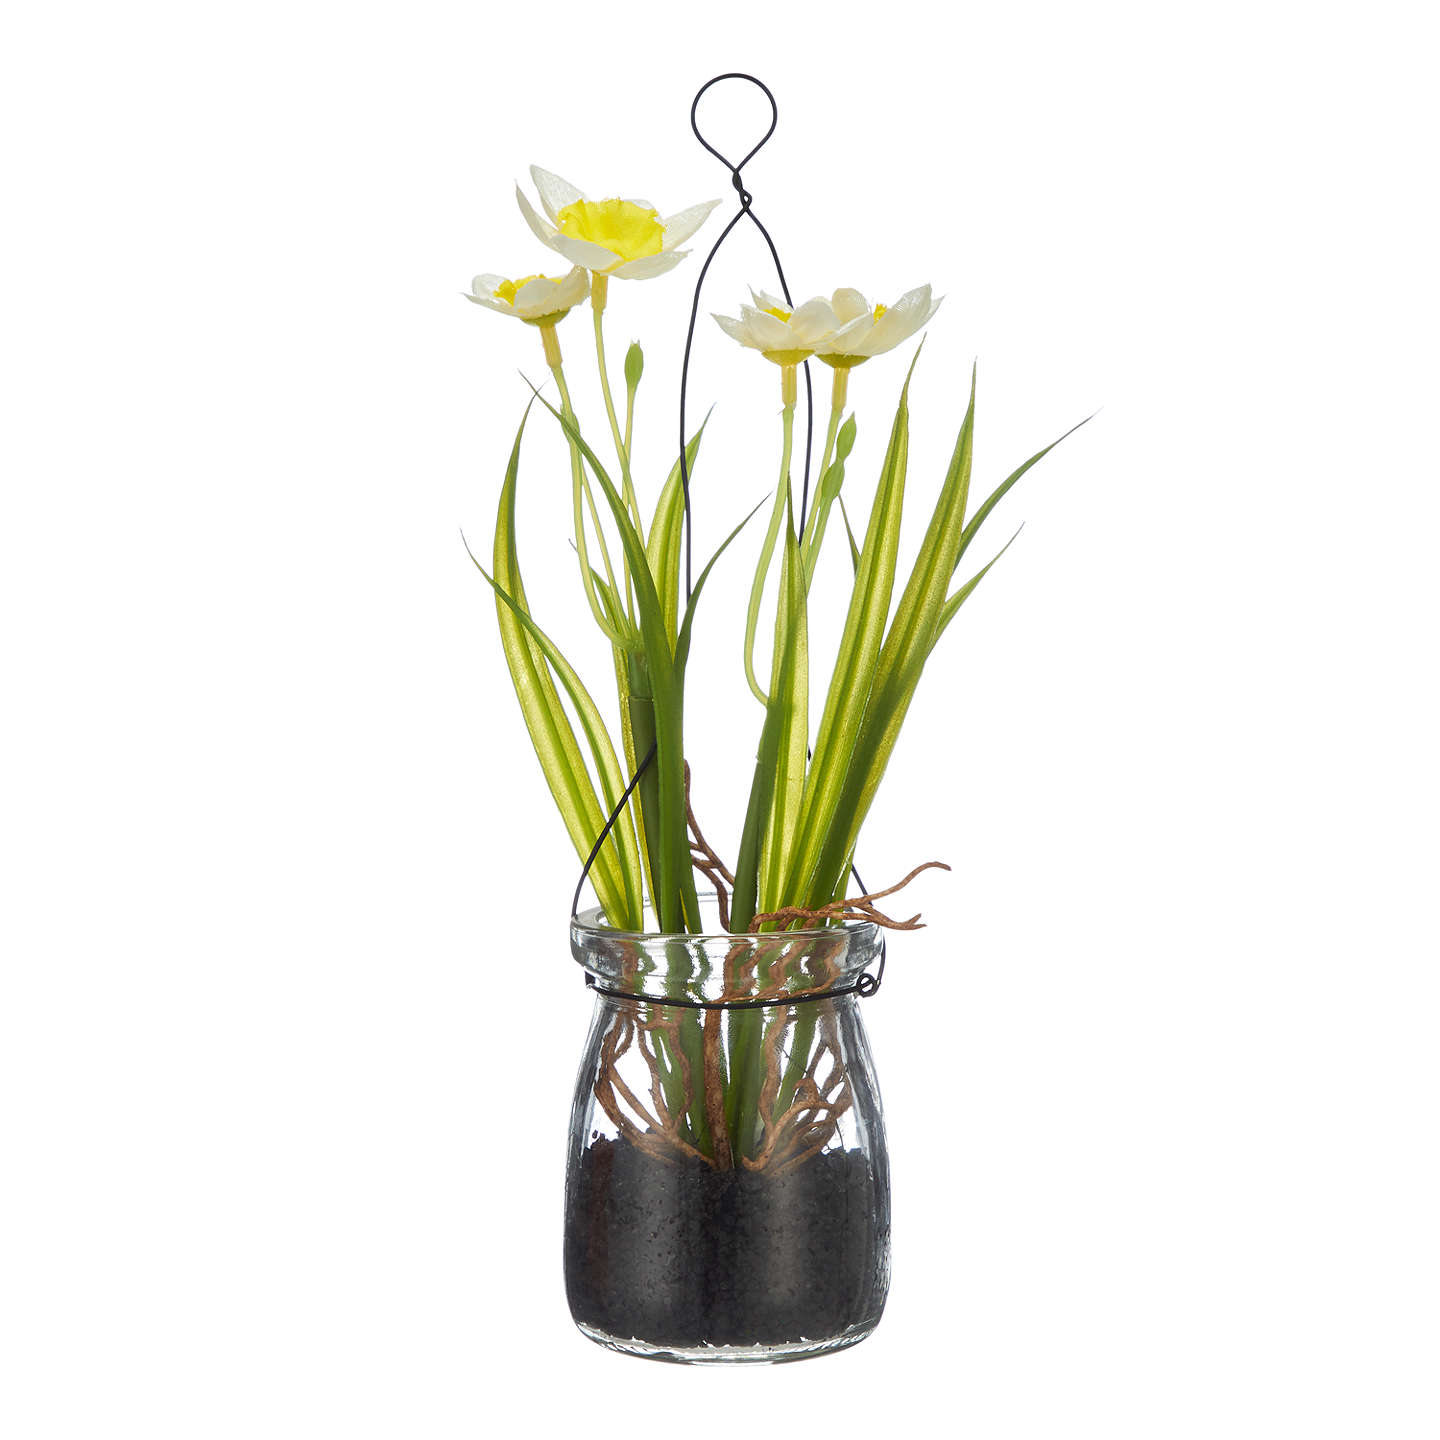 John lewis artificial daffodils in a jar white at john lewis buyjohn lewis artificial daffodils in a jar white online at johnlewis mightylinksfo